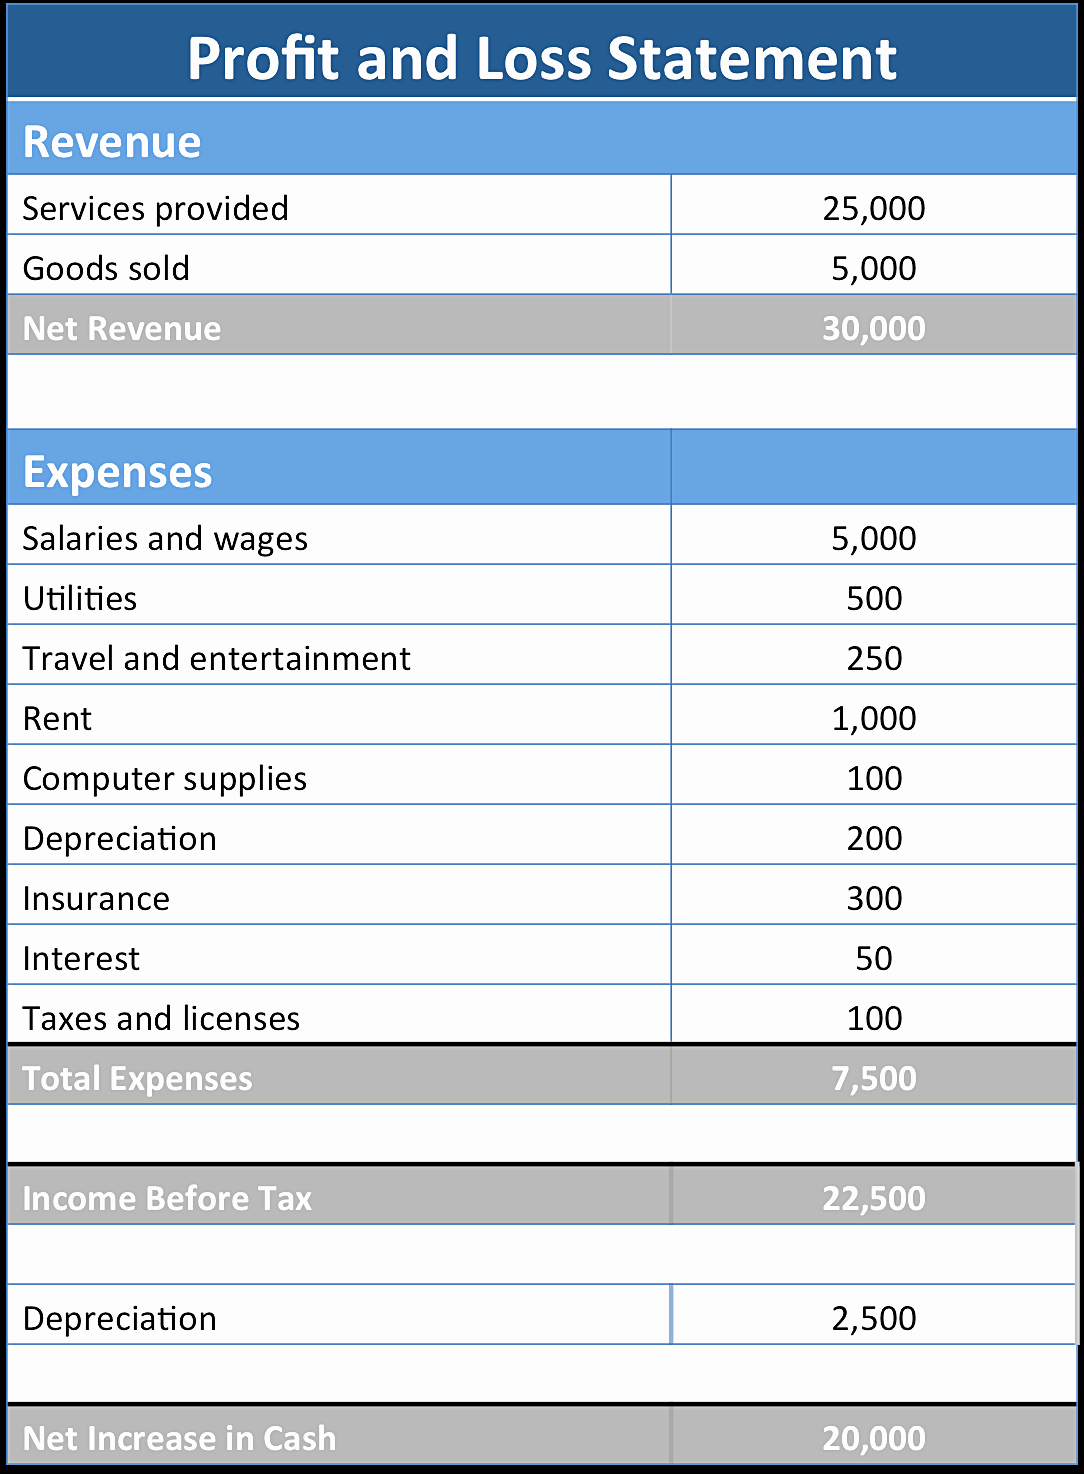 Excel Profit and Loss Statement Fresh Basic Profit and Loss Statement Template Mughals